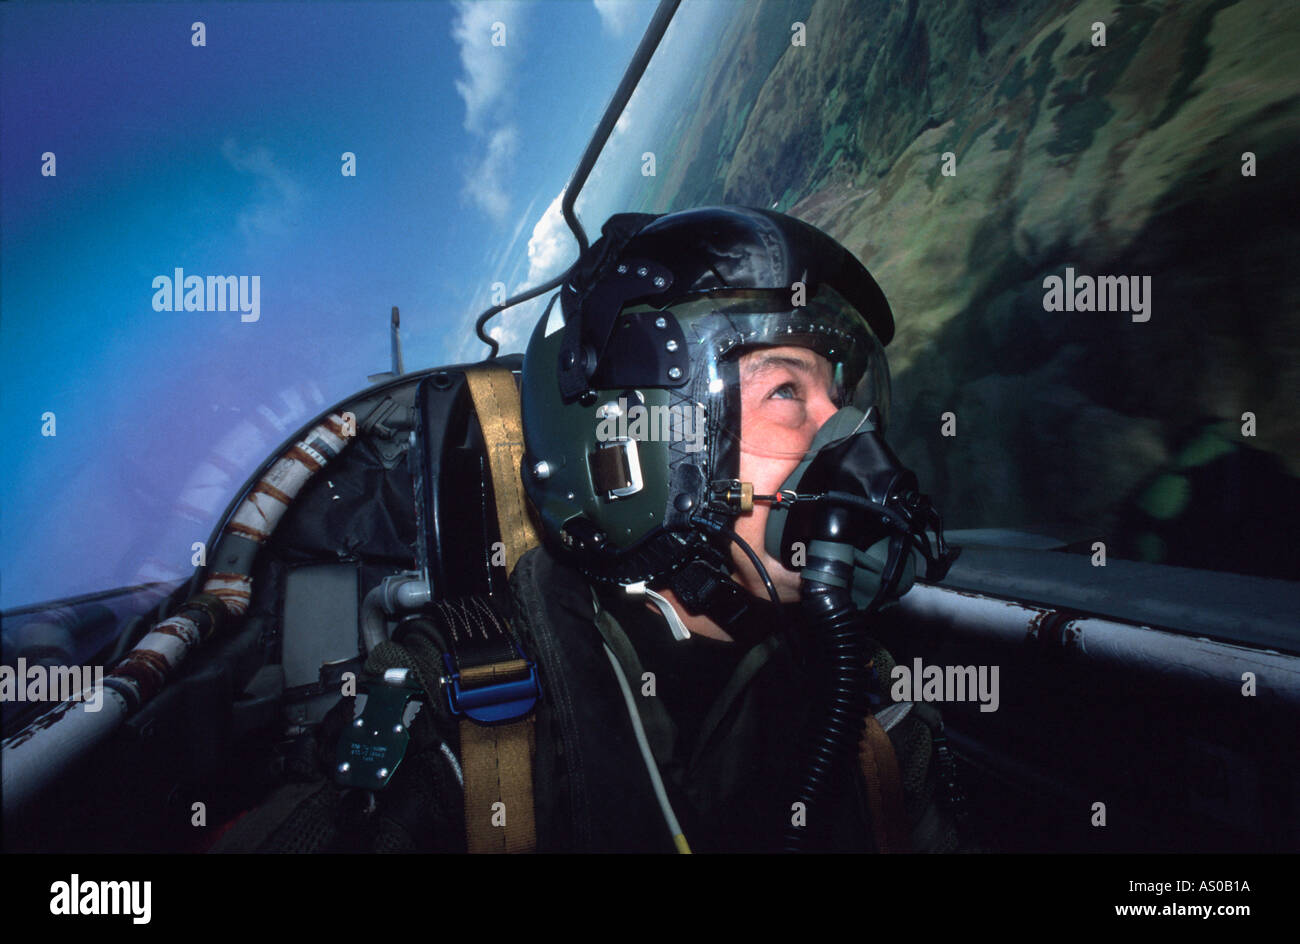 Pilot in cockpit of jet fighter aircraft - Stock Image